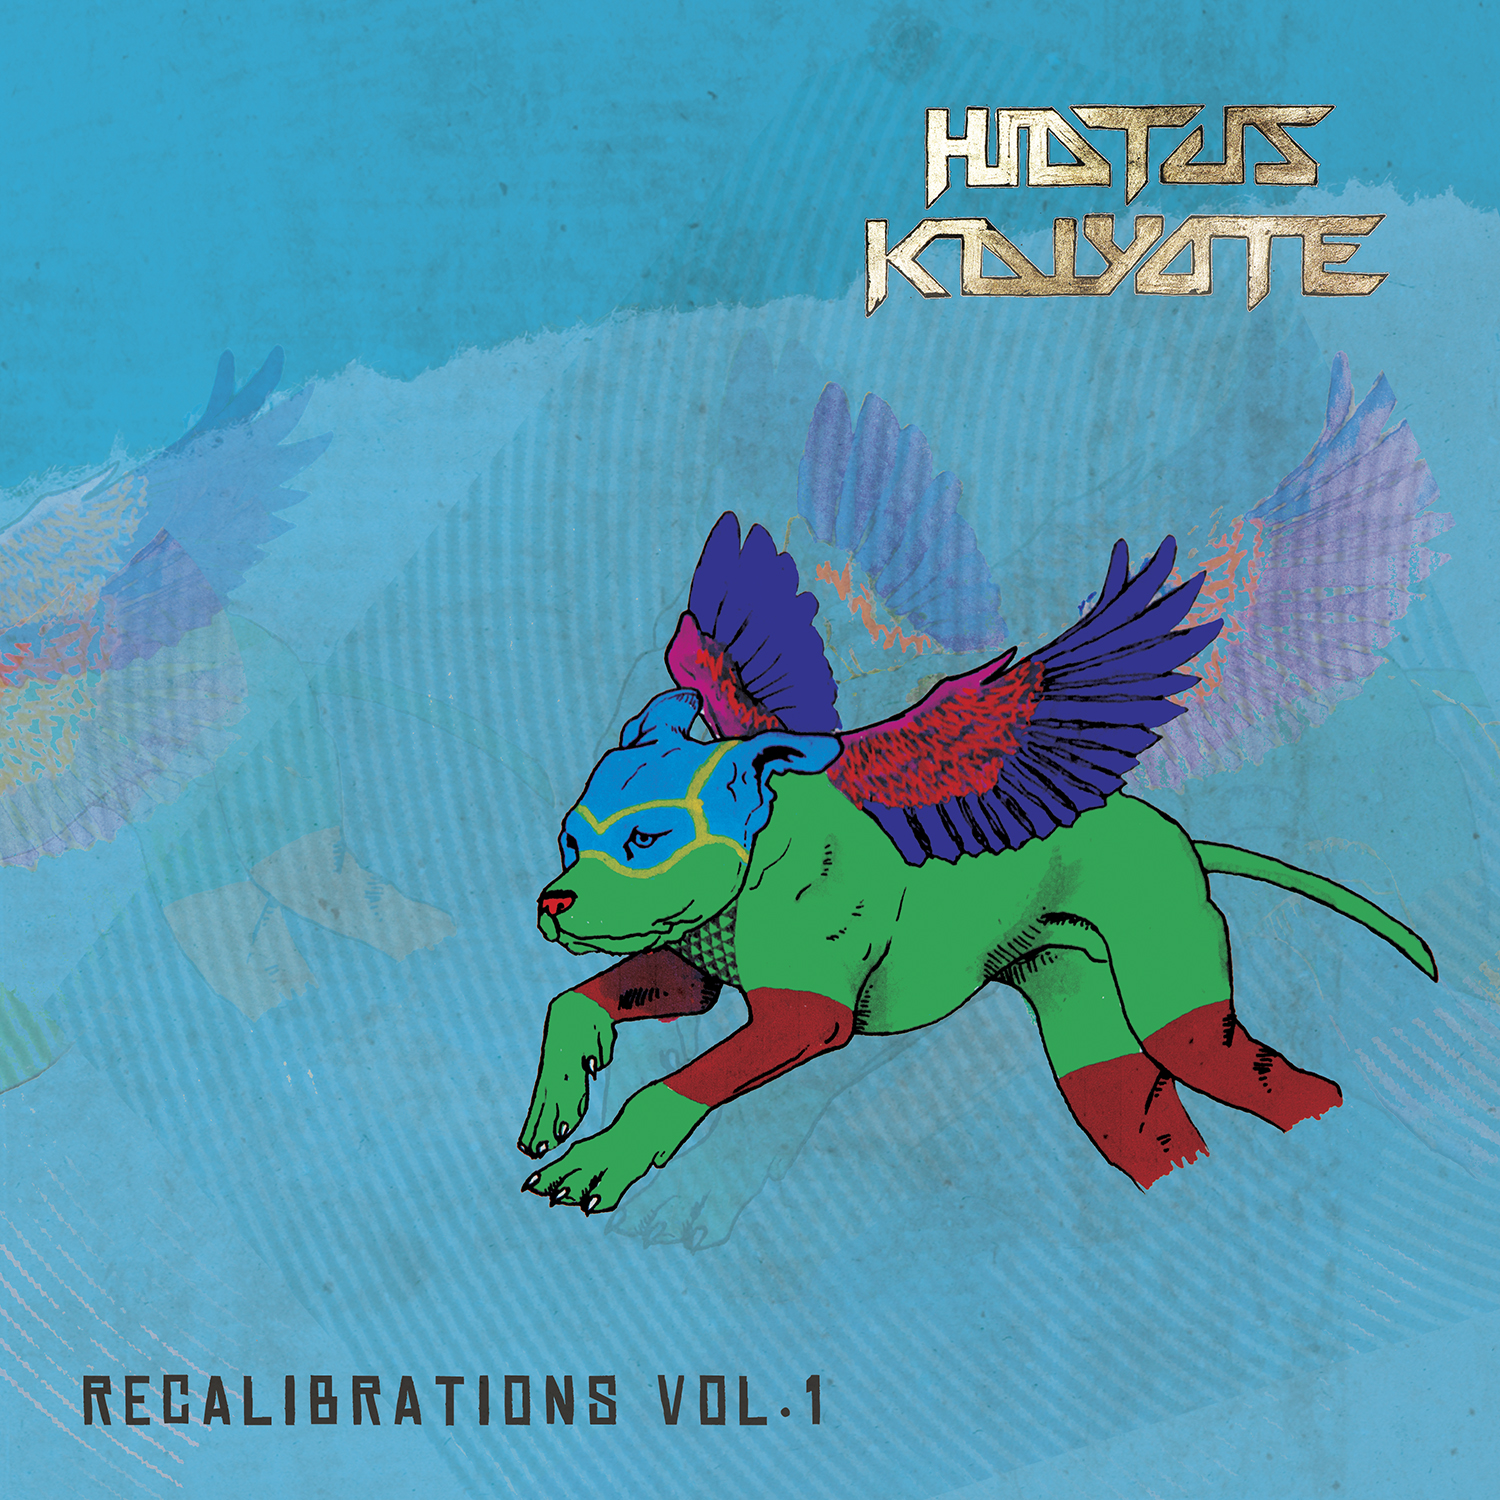 HIATUS KAIYOTE NEW EP – RECALIBRATIONS VOL. 1 VINYL FEATURING TAYLOR MCFERRIN, ANDERSON PAAK & VIKTER DUPLAIX OUT TODAY Image